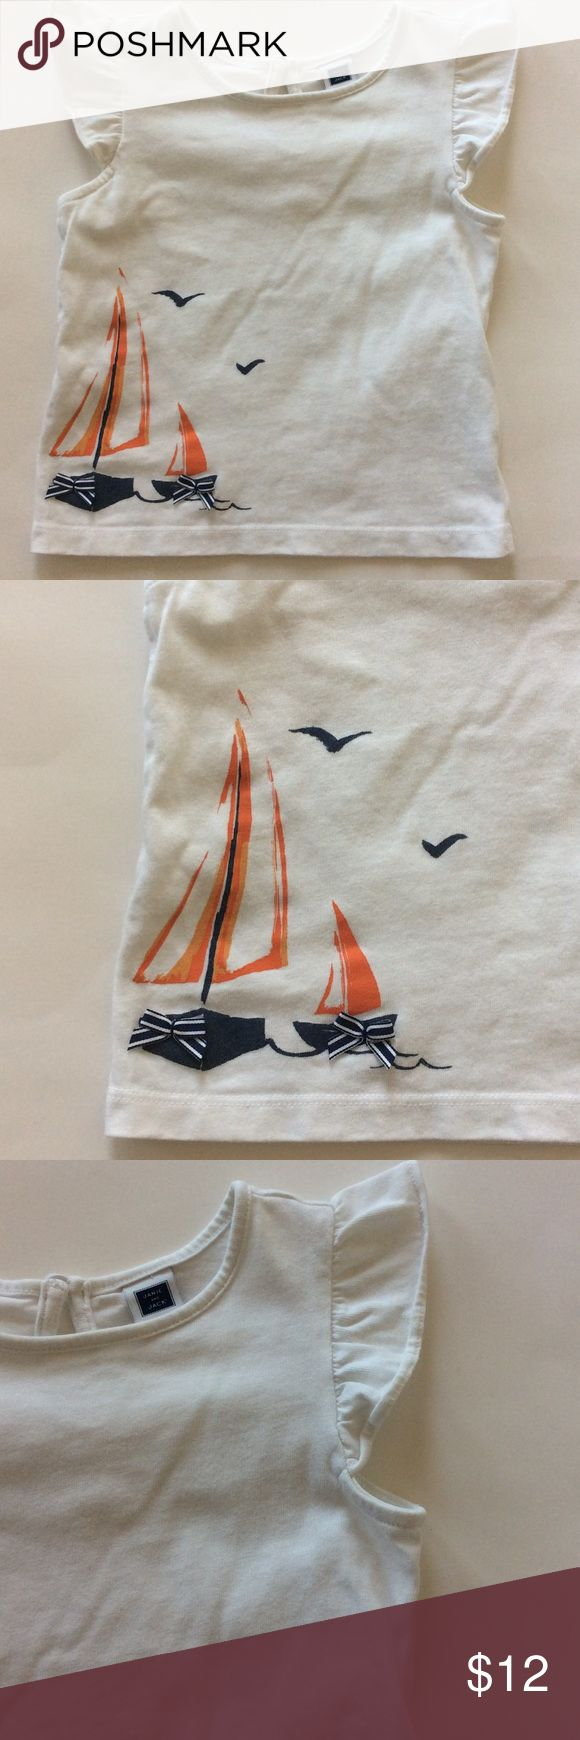 👫Janie and Jack tee Janie and Jack short sleeve tee. Super cute nautical detailing. Flutter sleeves. Keyhole button closure in back. 100% cotton. Size 2T. Excellent condition. Janie and Jack Shirts & Tops Tees - Short Sleeve